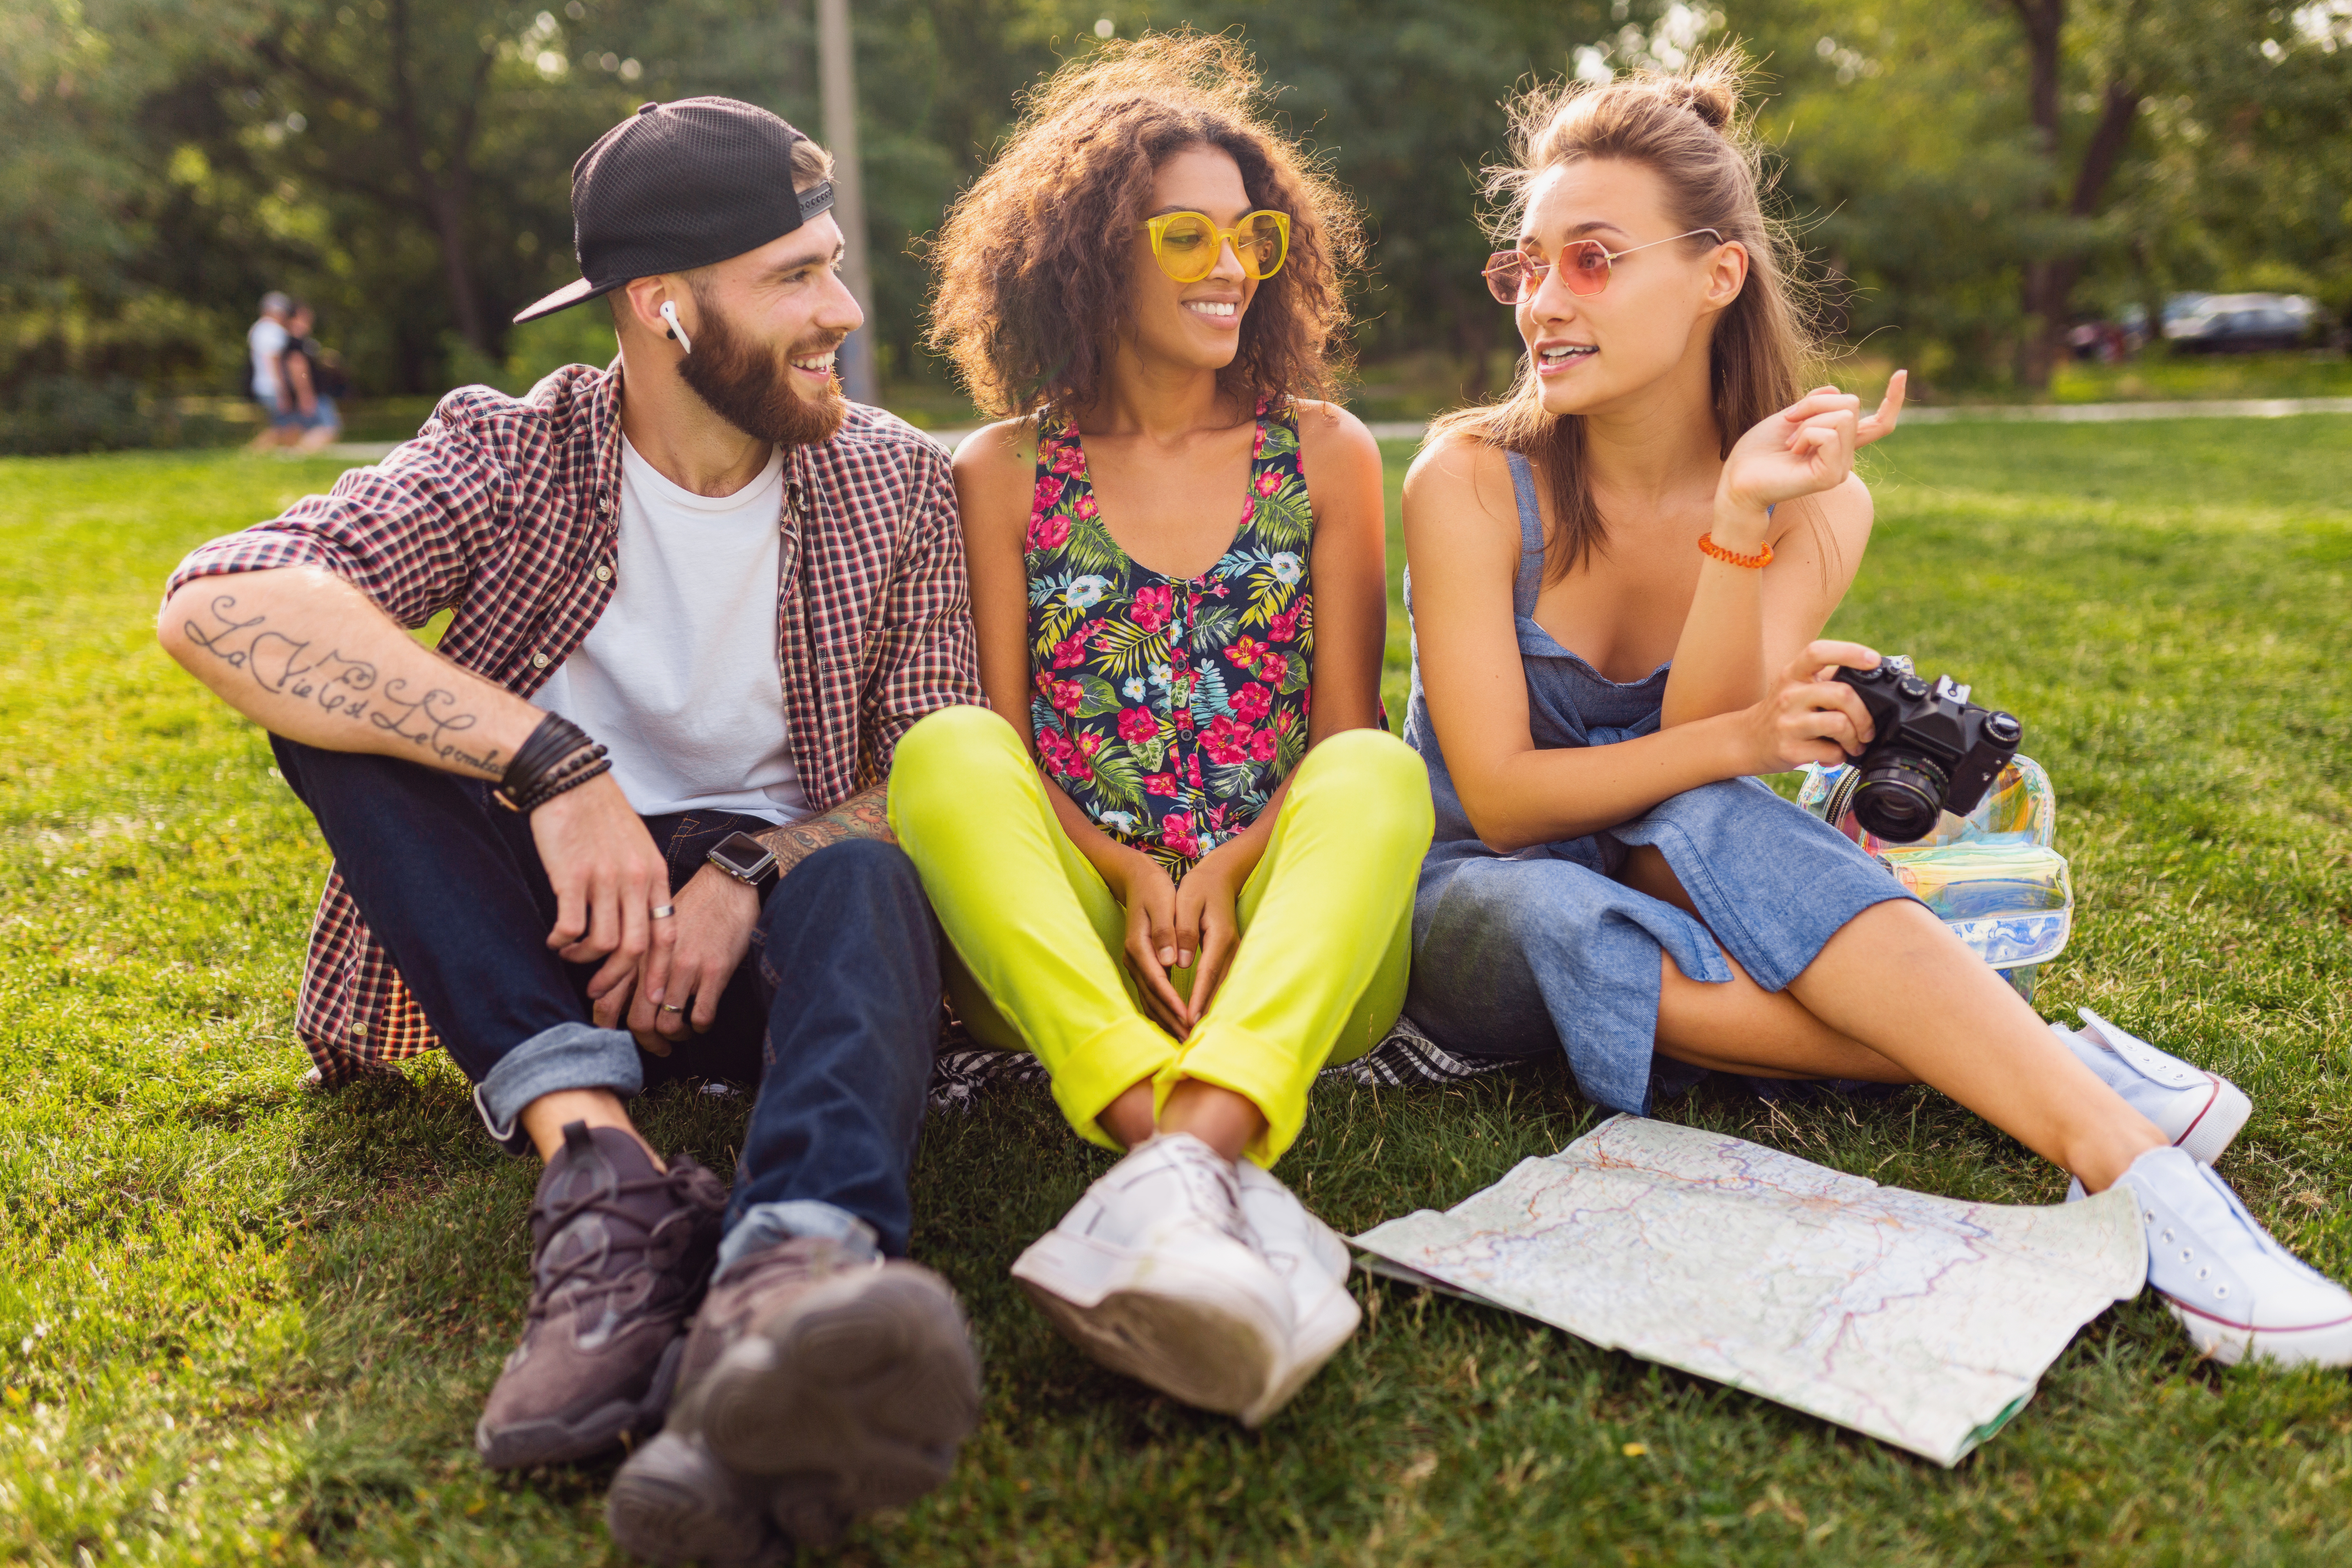 happy-young-company-friends-sitting-park-traveling-looking-map-sightseeing-man-women-having-fun-together-colorful-summer-hipster-fashion-style-taking-photo-camera-talking-smiling